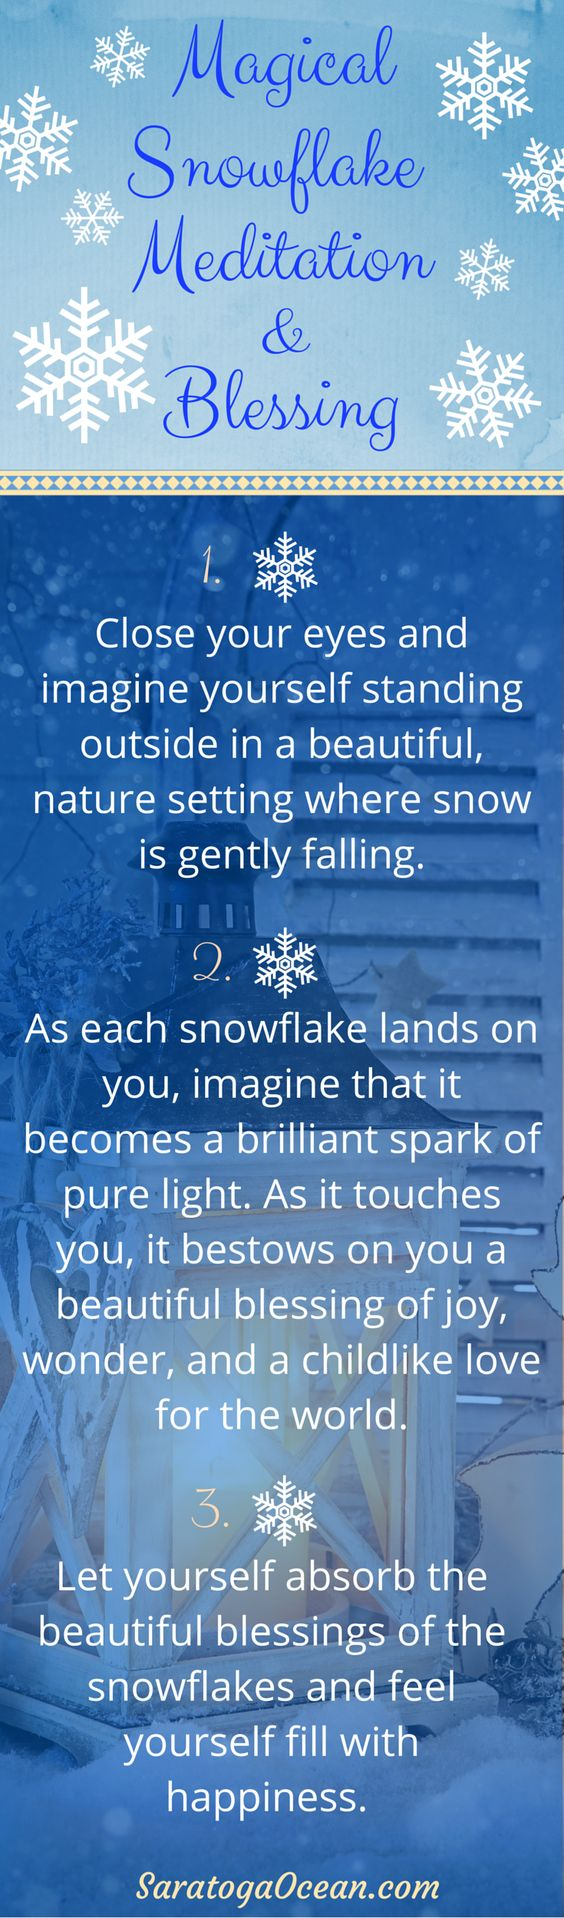 Here's a fun meditation to help put a little joy and magic into your day. If it's winter and you have a day of snow, you can even try this outside with real snowflakes! Enjoy! <3